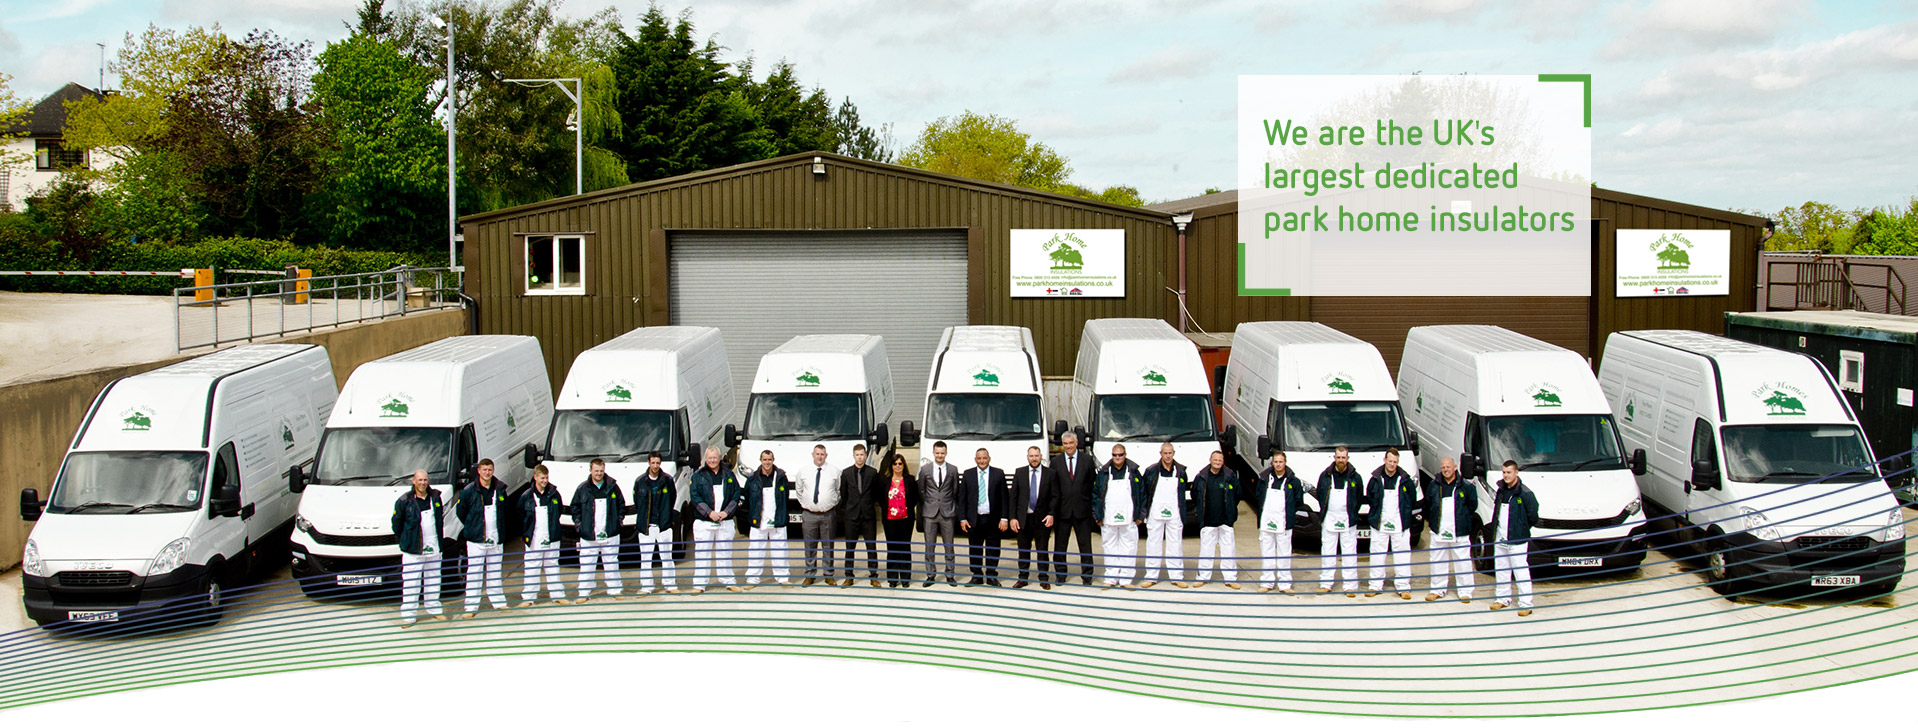 Park Home Insulations - the UK's largest dedicated park home insulators